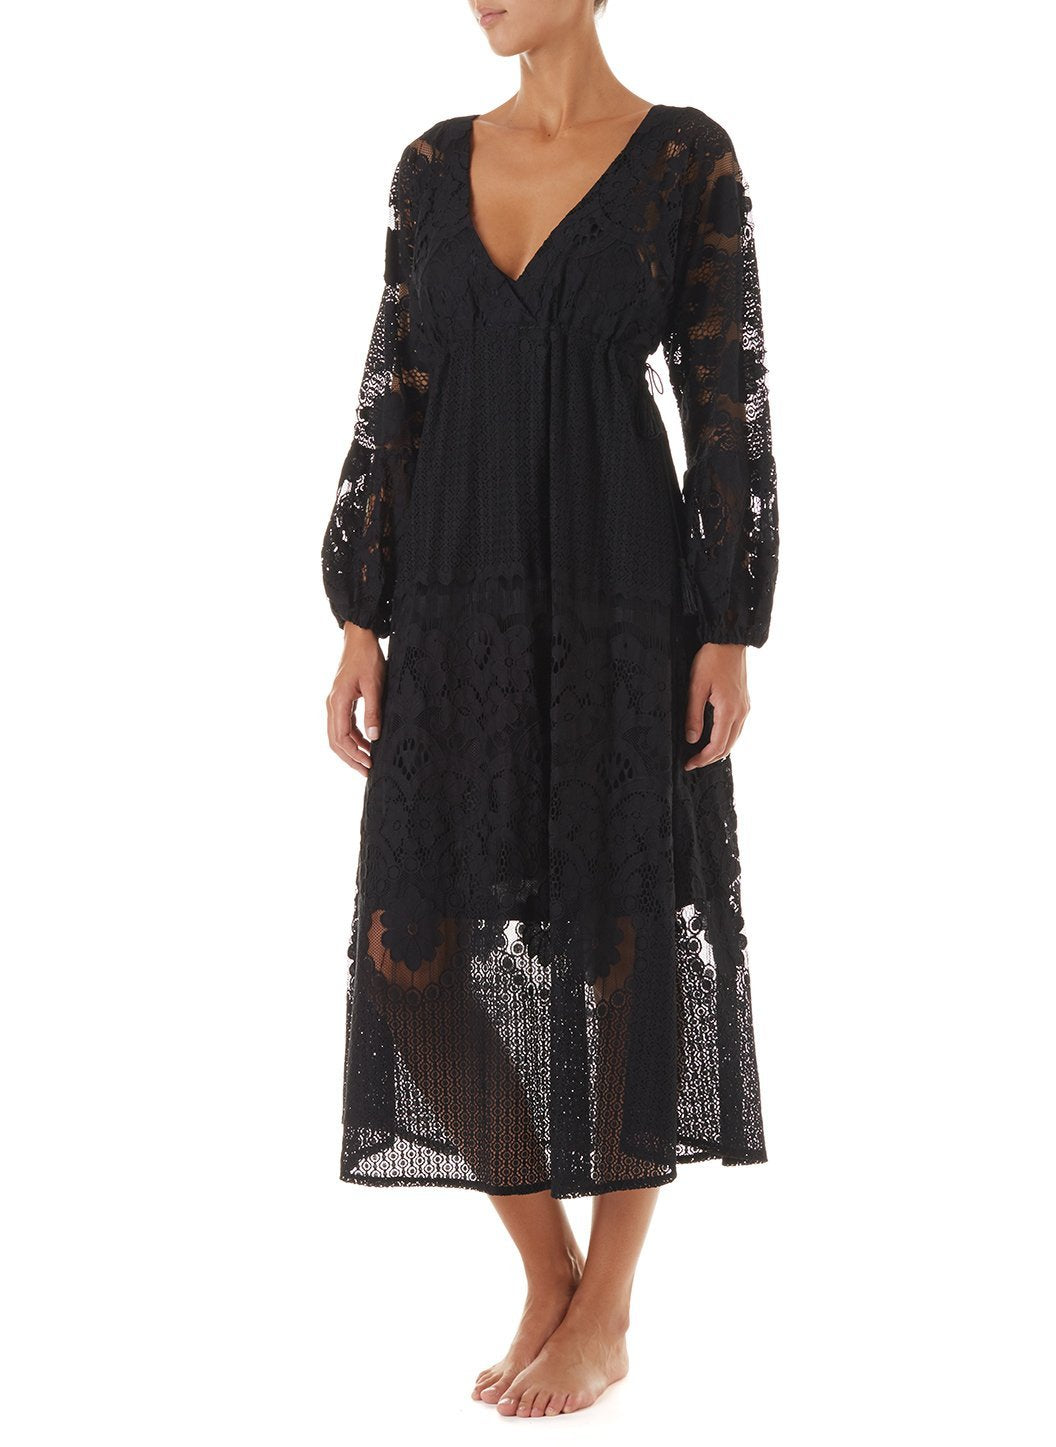 melissa black lace tieside midi dress 2019 F_2